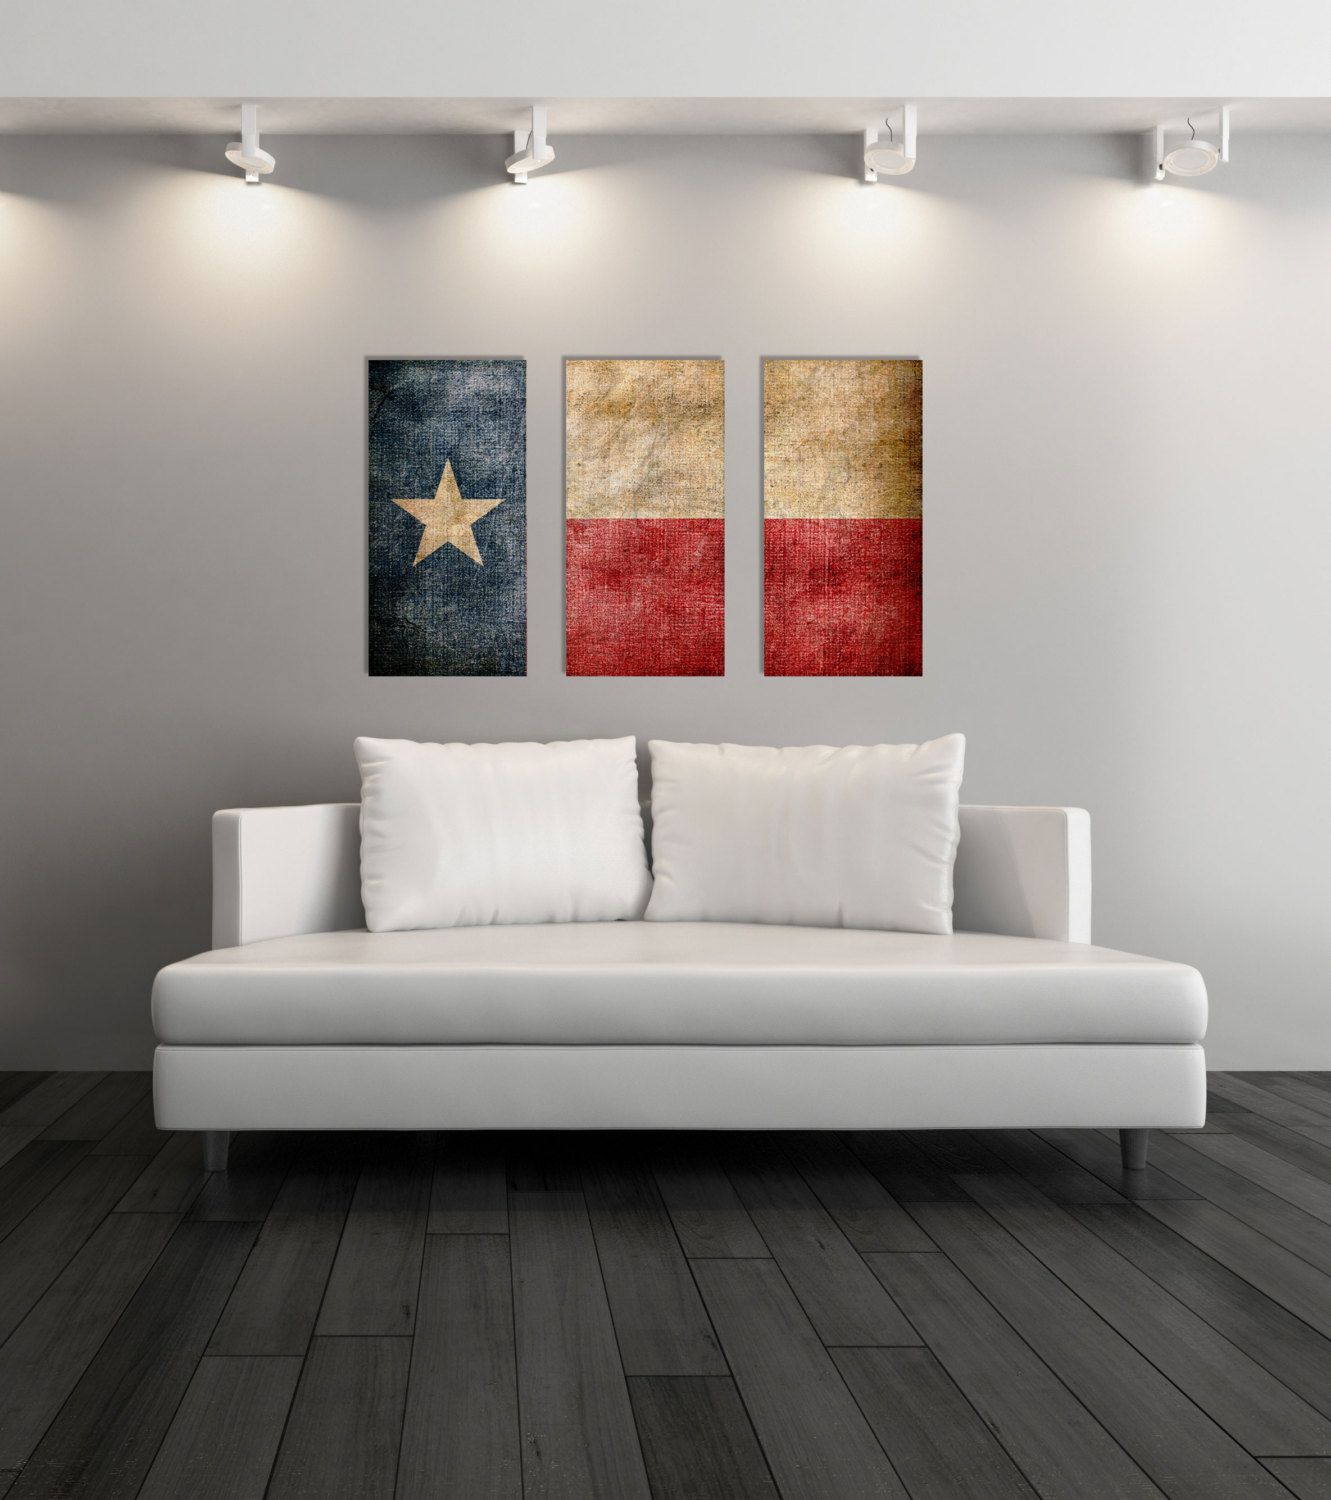 Perfect Triptych Vintage Texas Flag Panel Canvas Art By PixelPerfect12